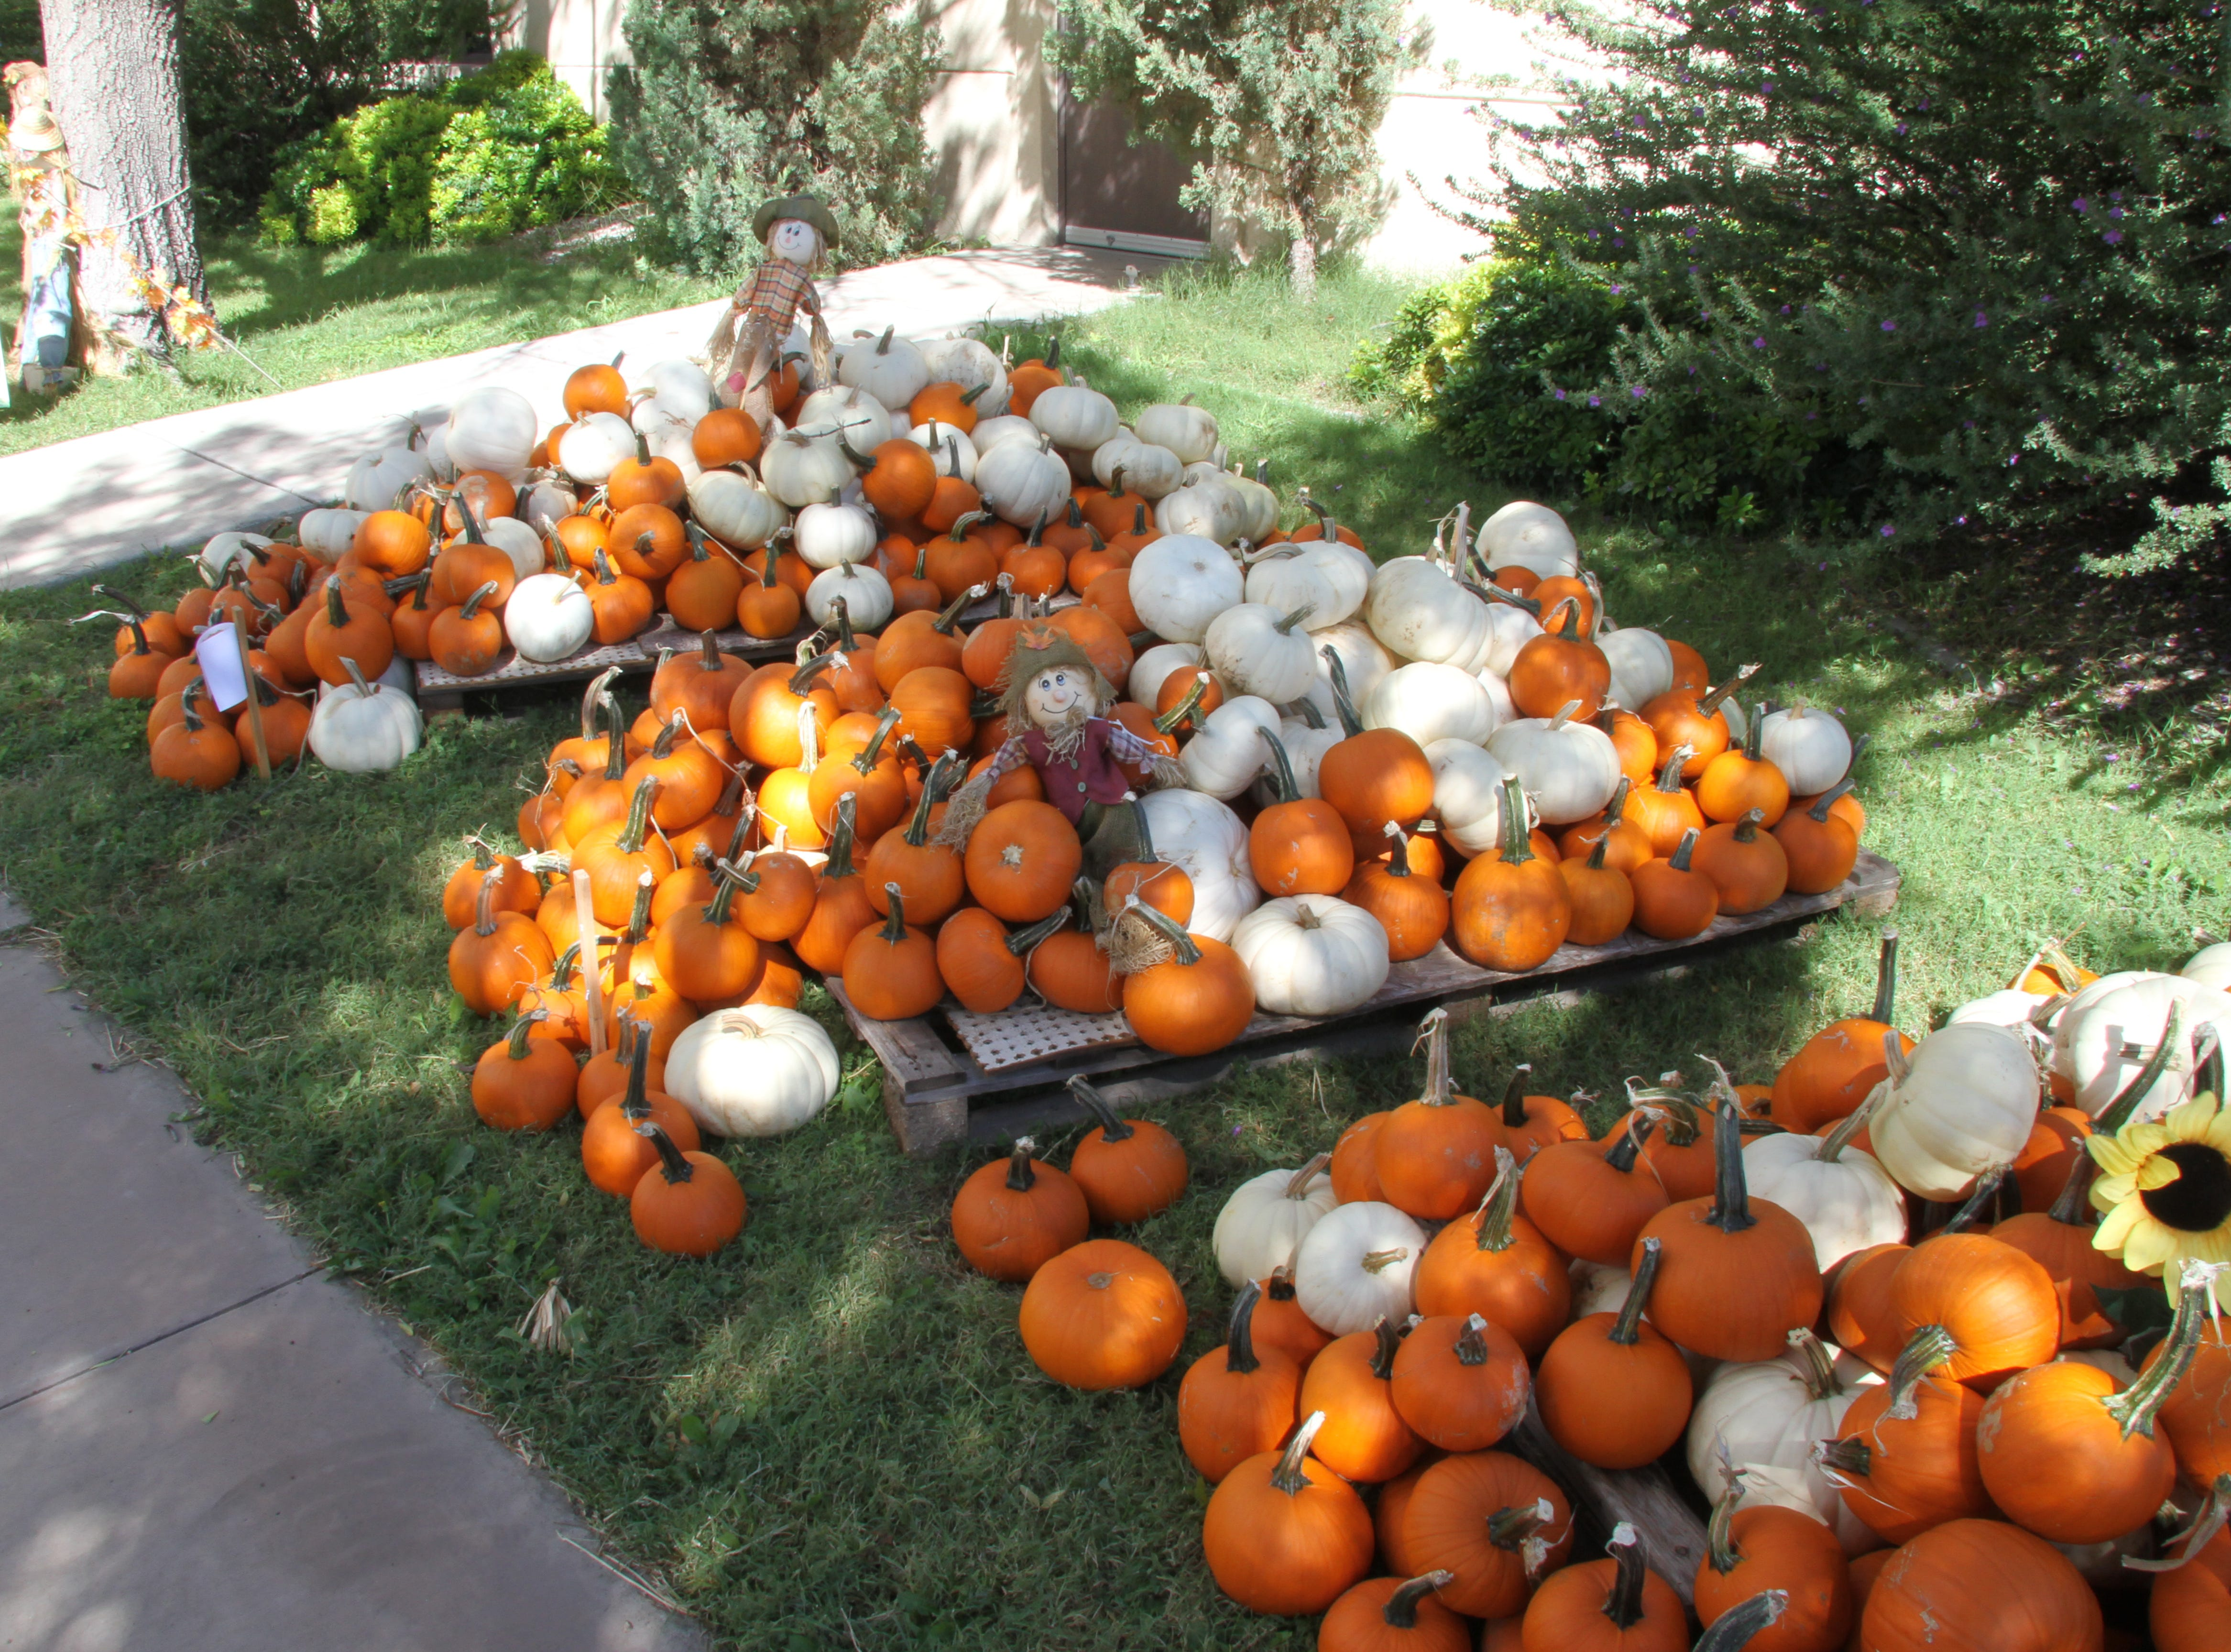 The St. Peter Lutheran Church Pumpkin Patch is back for its 14th year. The church is located at 1302 W. Pierce.